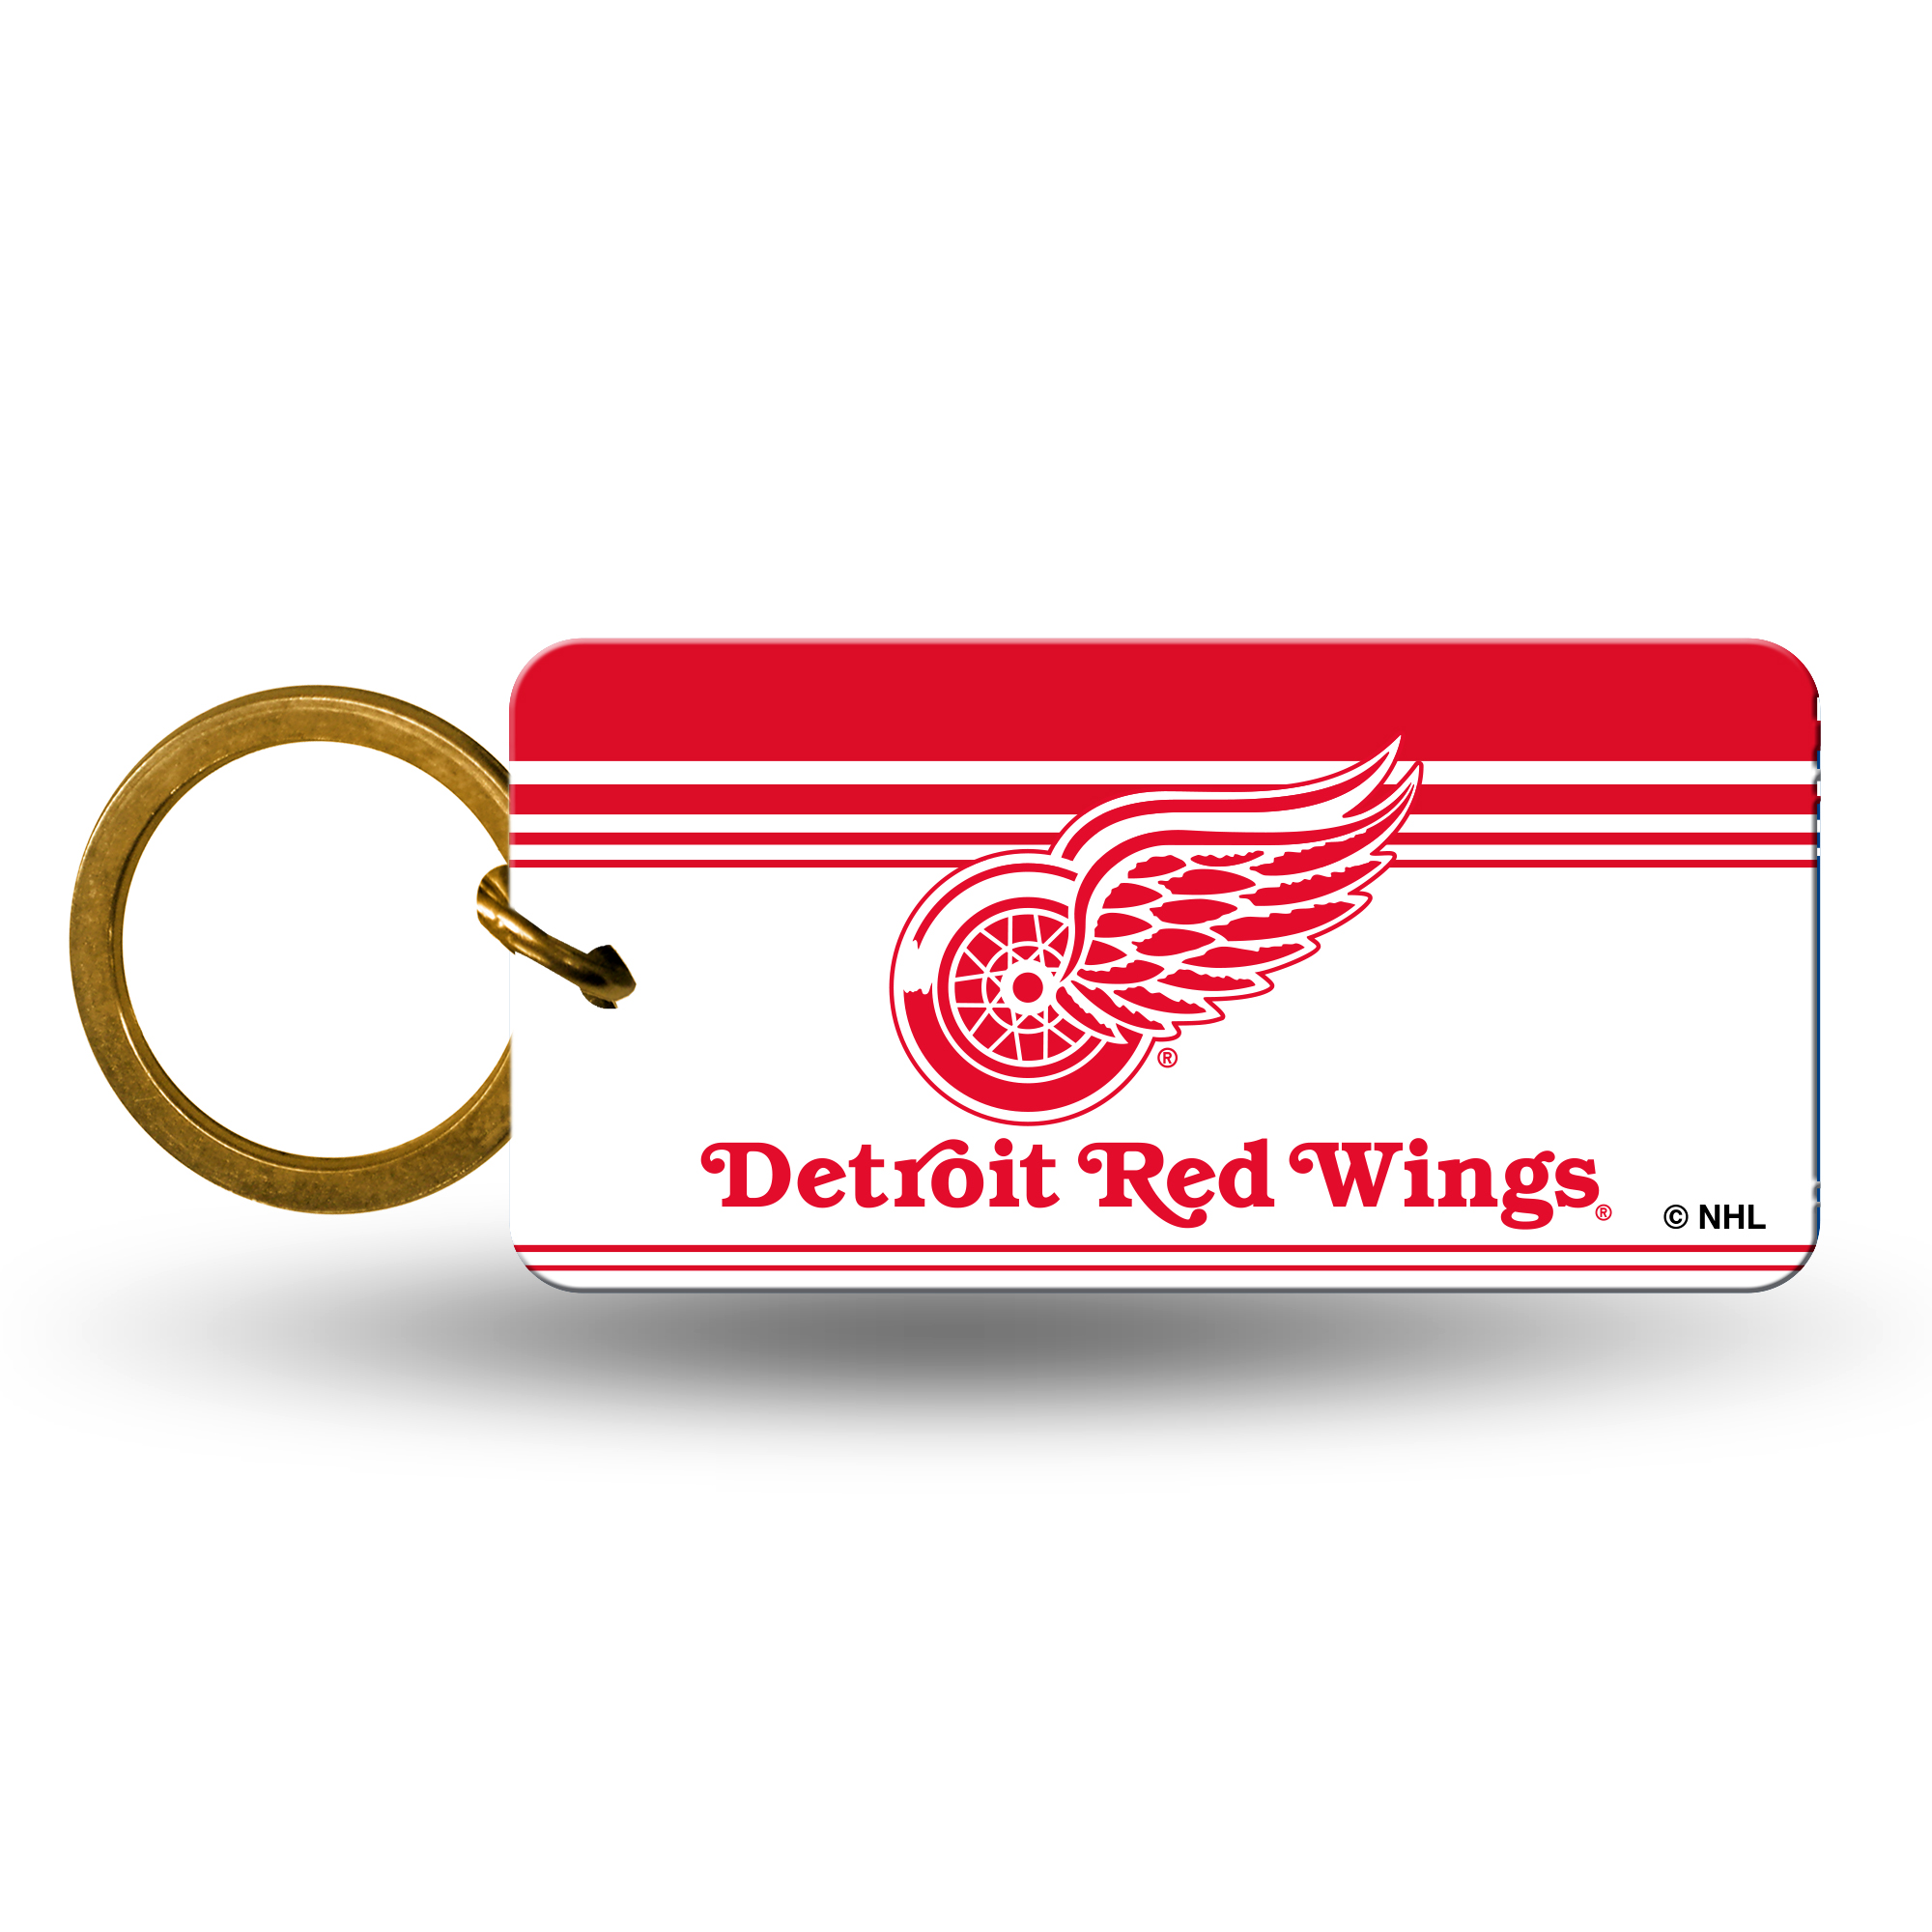 Detroit Red Wings Official NHL 2 inch  Crystal View Key Chain Keychain by Rico Industries